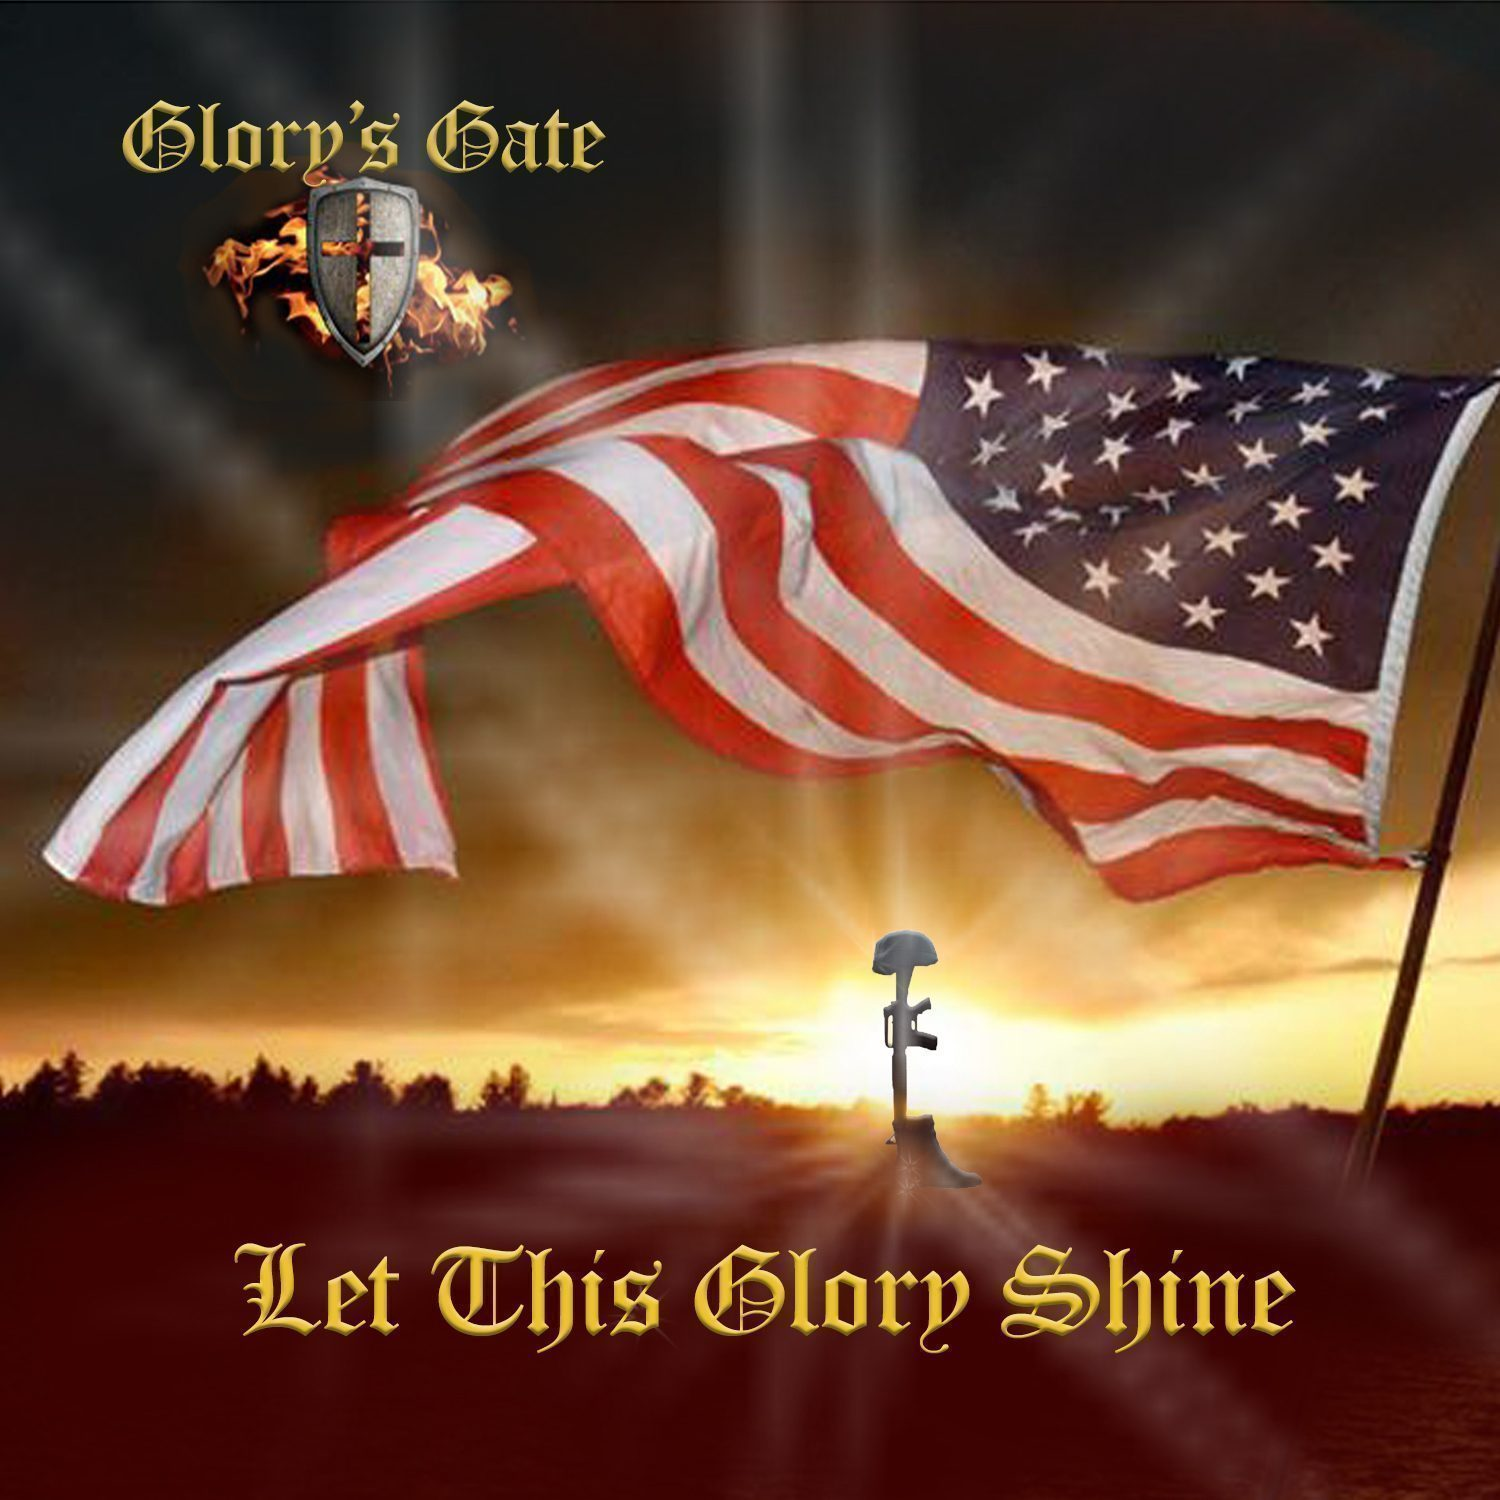 let this glory shine 7